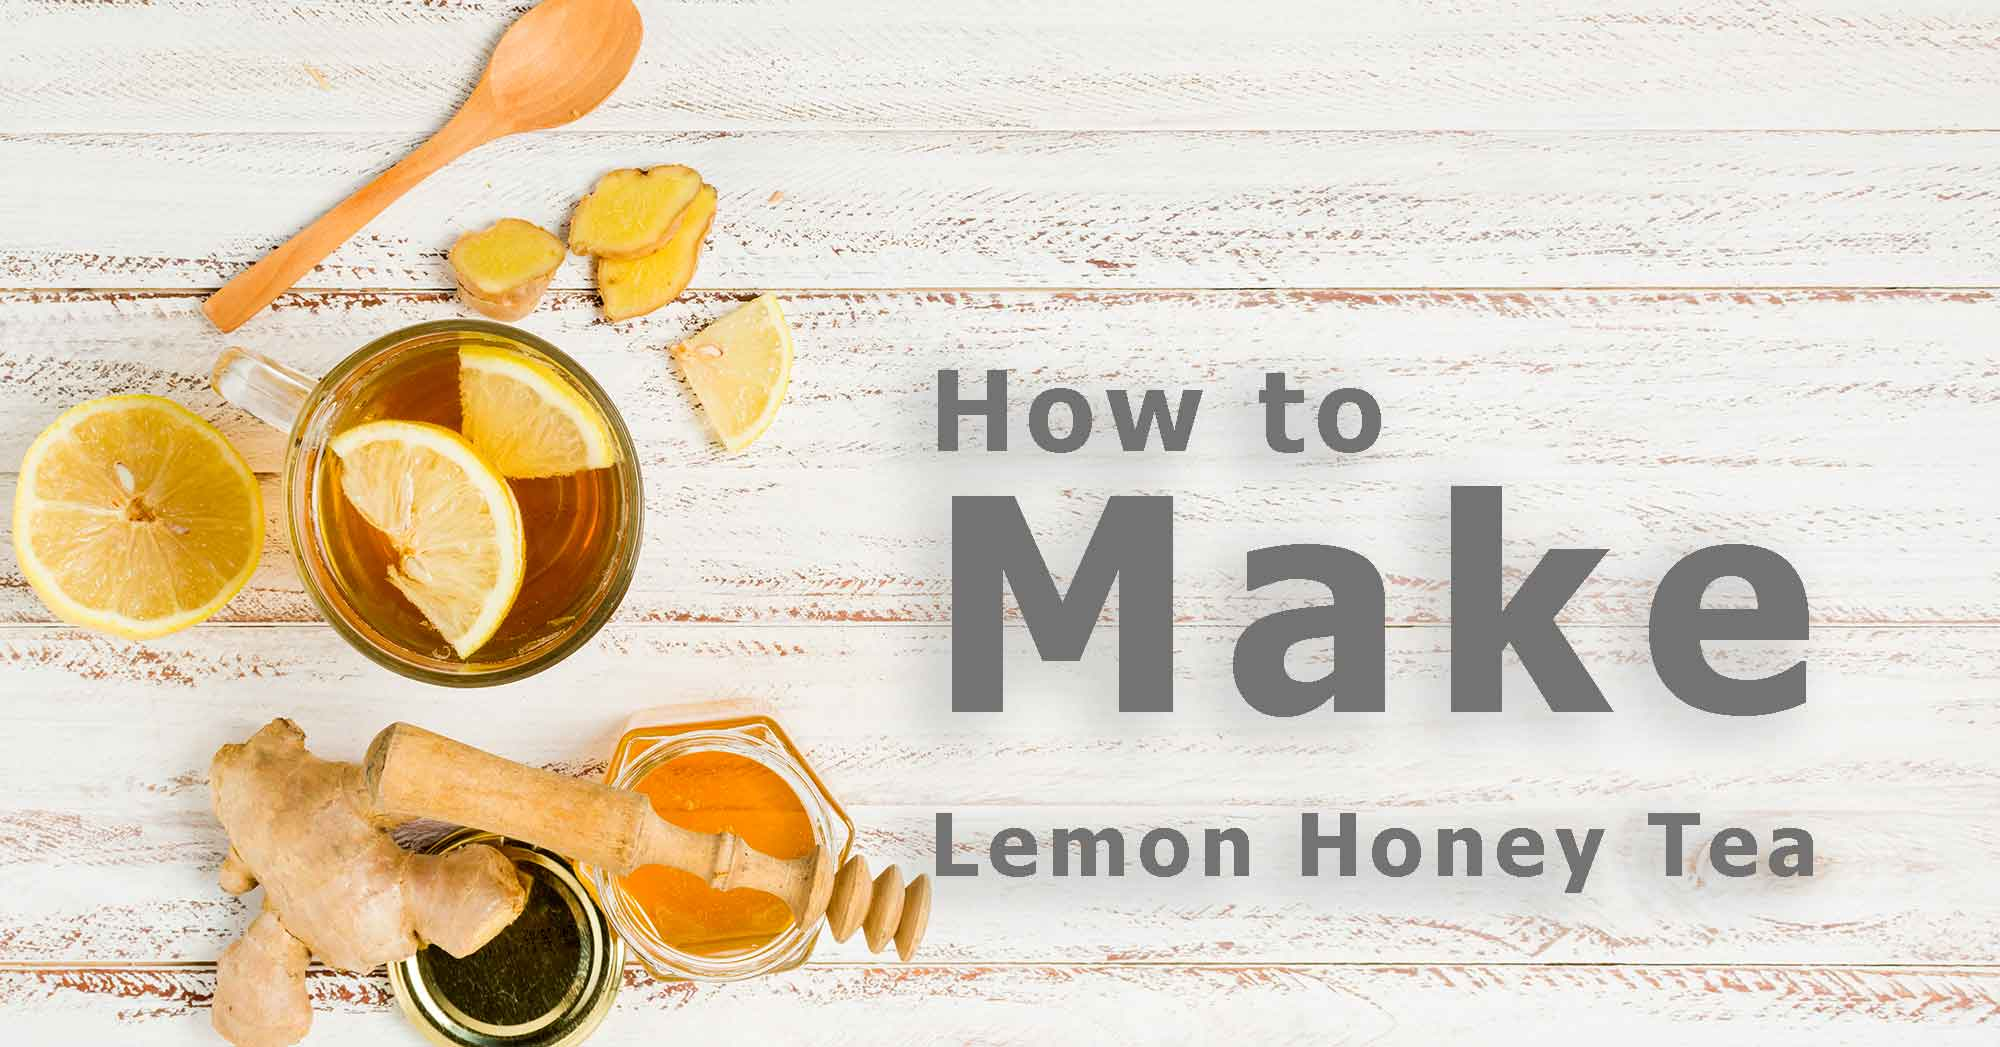 way to make lemon honey tea